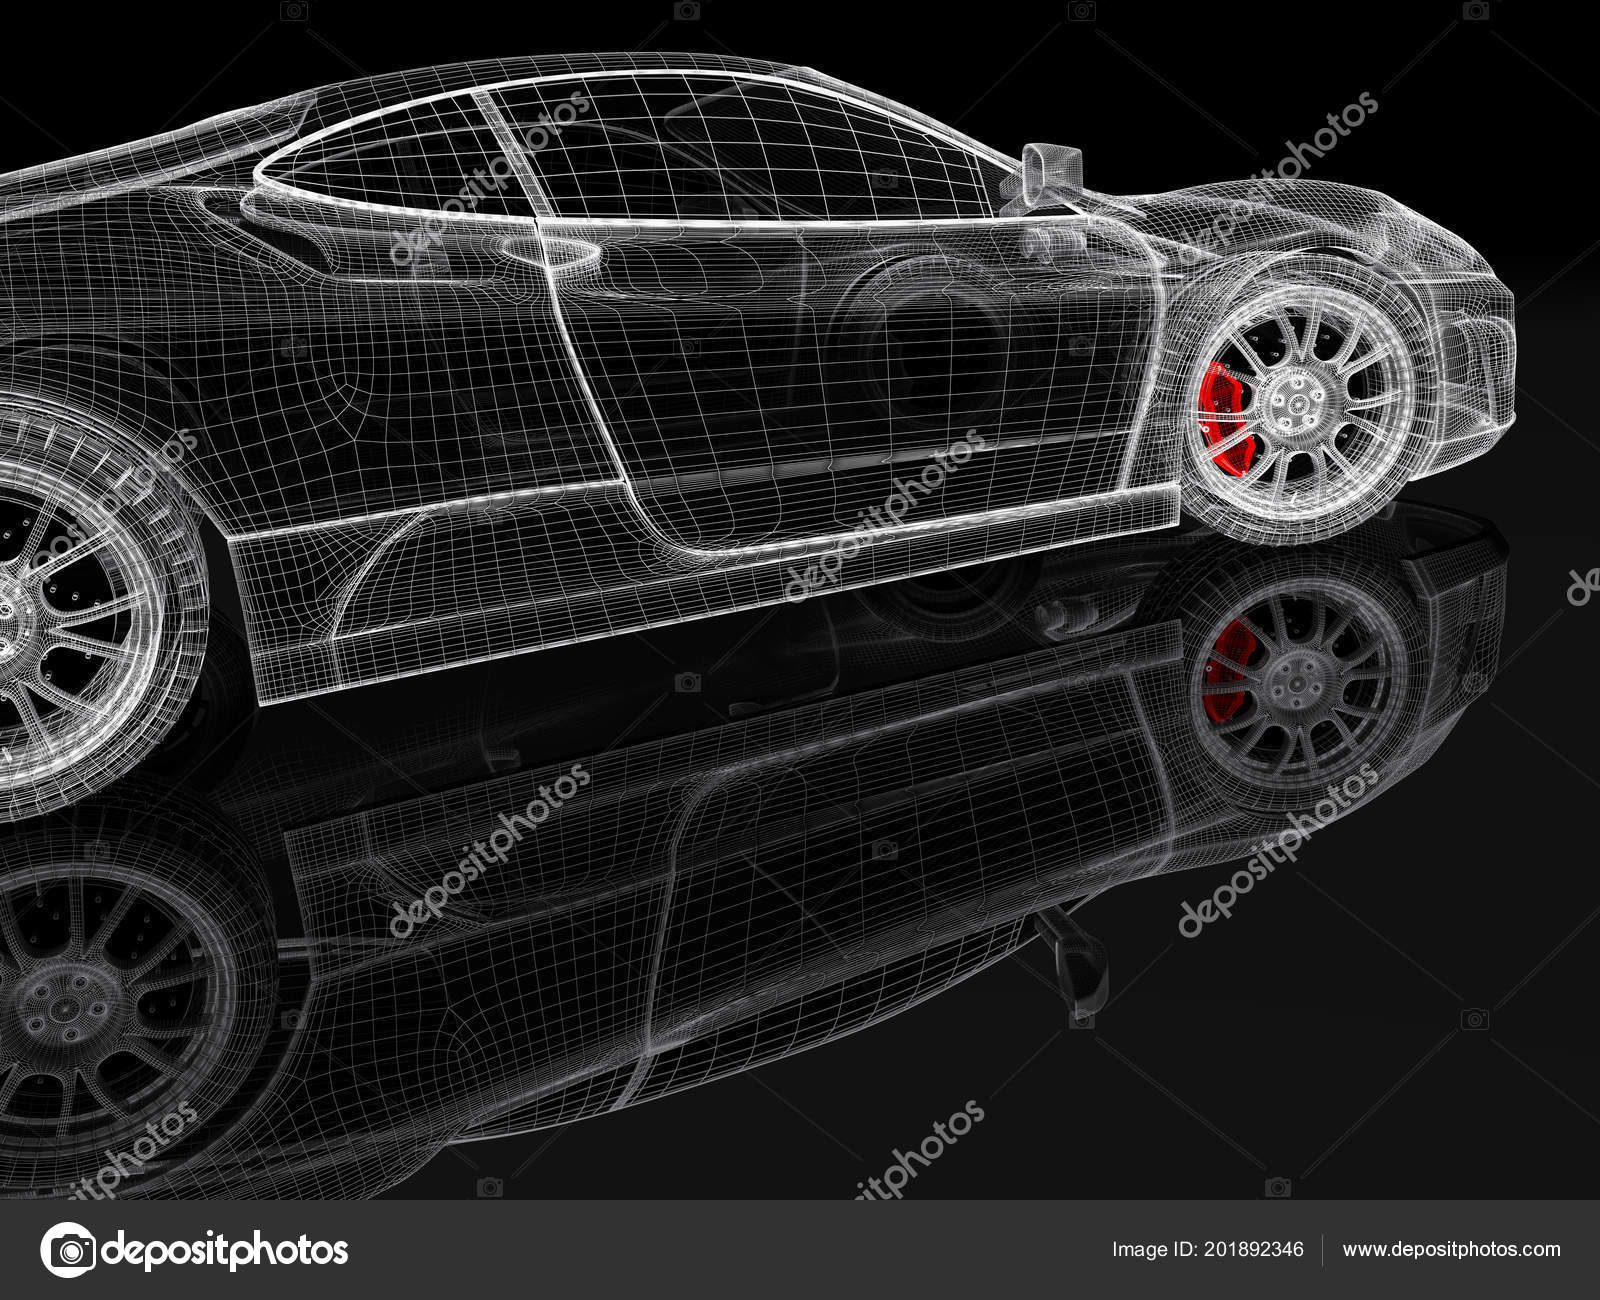 Car vehicle blueprint mesh model red brake caliper black background car vehicle 3d blueprint mesh model with a red brake caliper on a black background 3d rendered image photo by shtanzman malvernweather Gallery